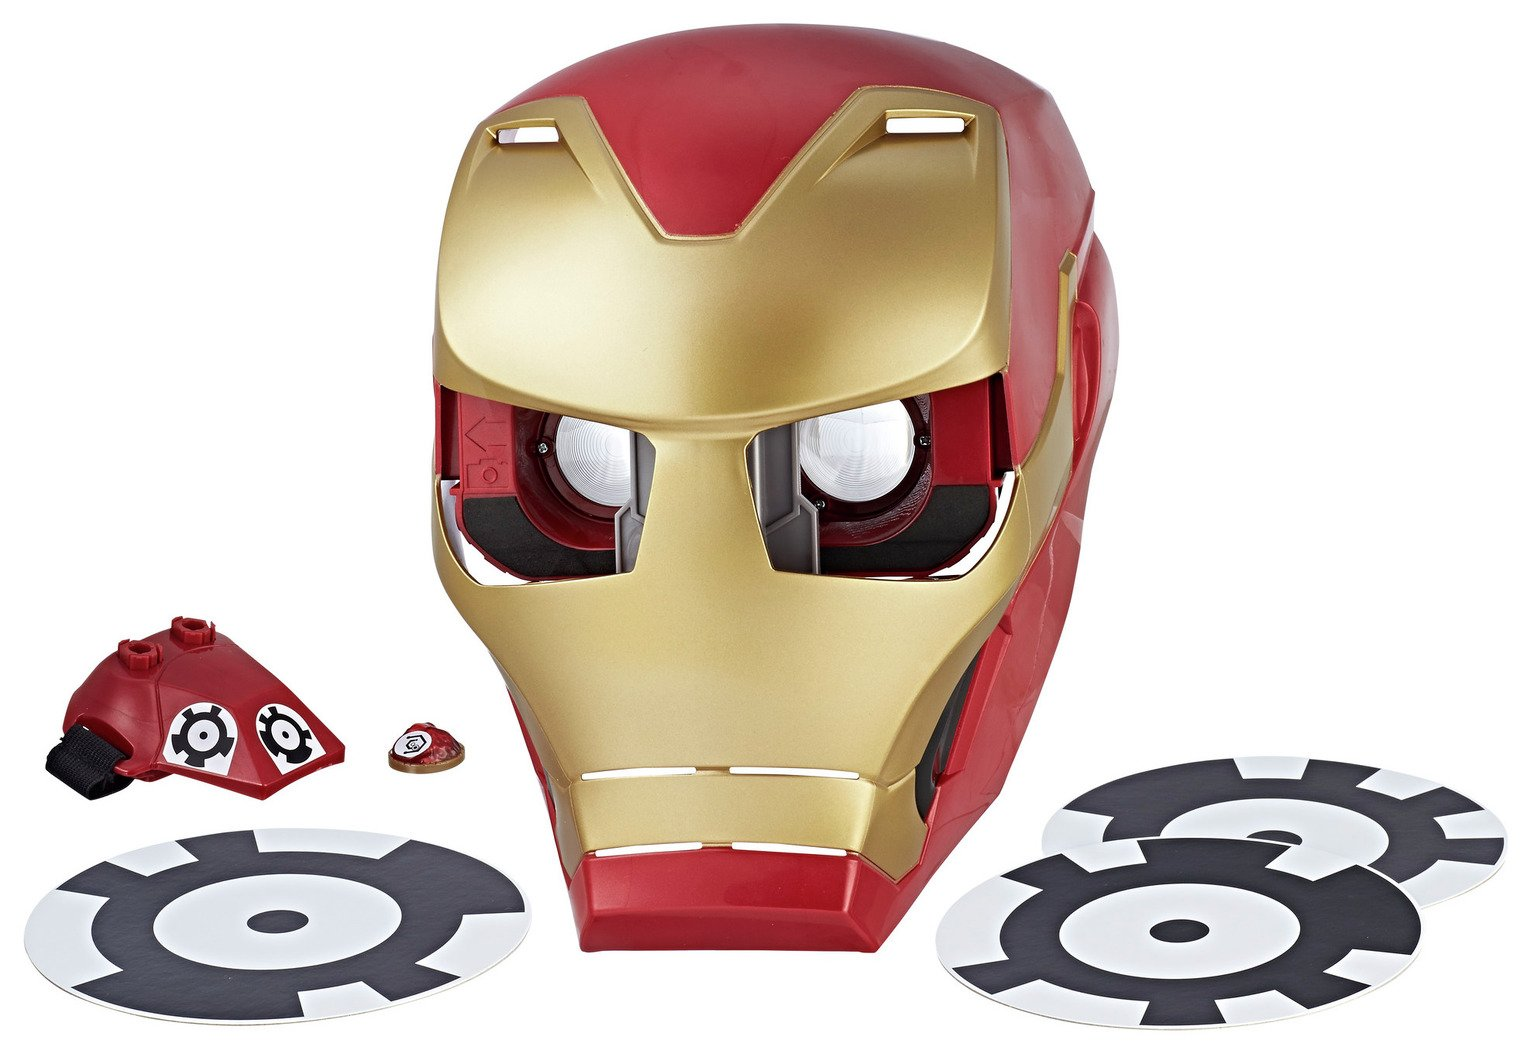 Marvel Avengers Infinity War Hero Vision Iron Man AR Set